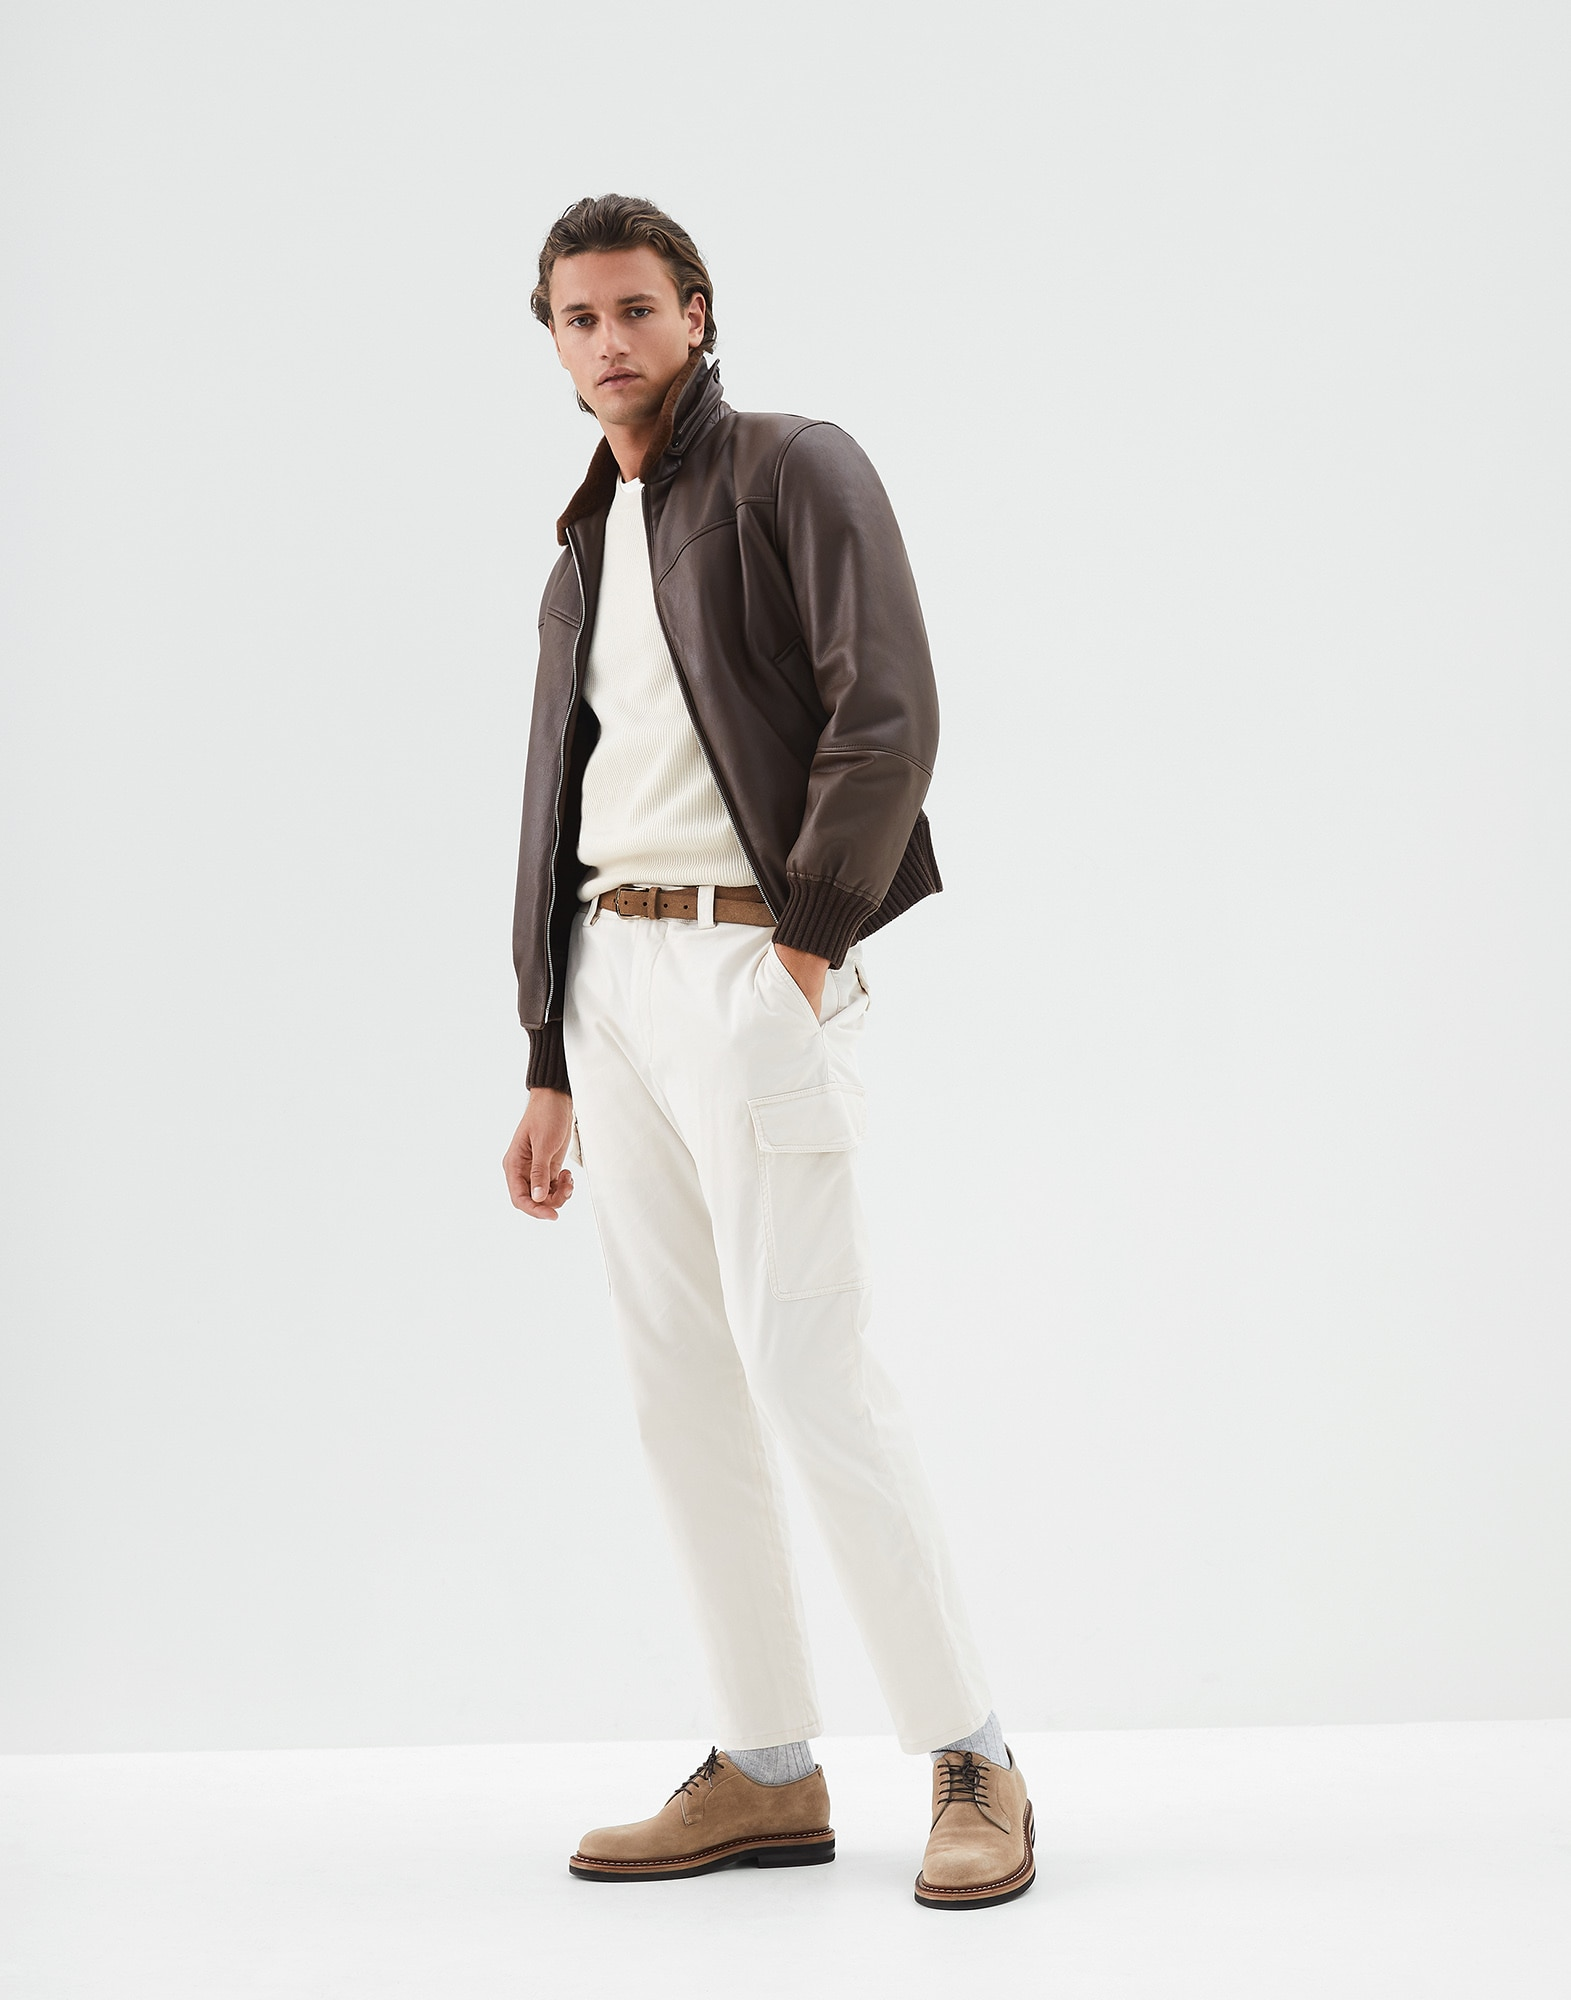 Short Sleeve T-Shirt Off-White Man 3 - Brunello Cucinelli